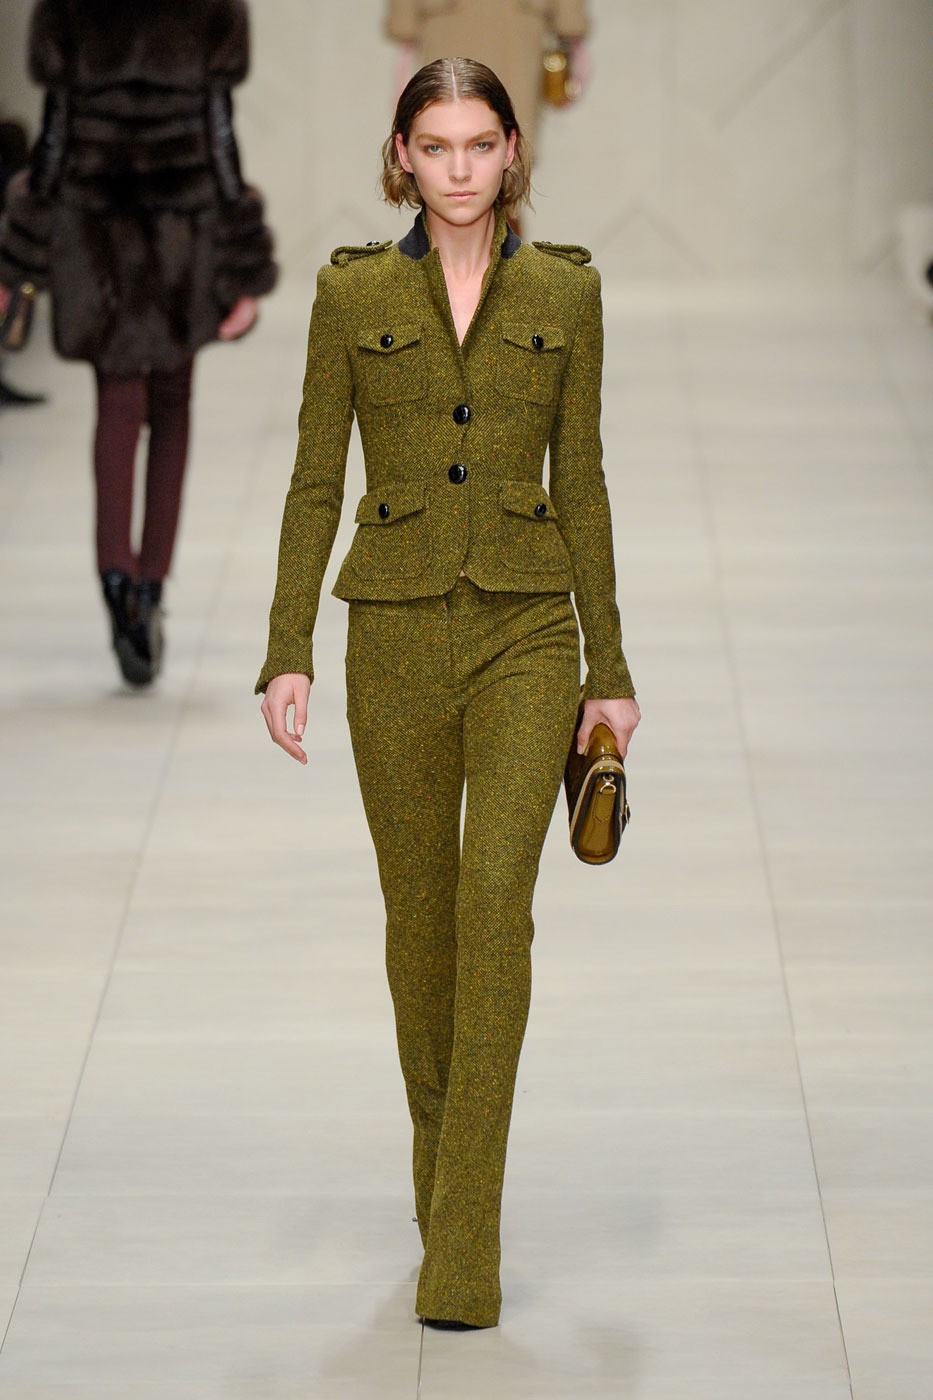 via fashioned by love | Burberry Prorsum Fall/Winter 2011